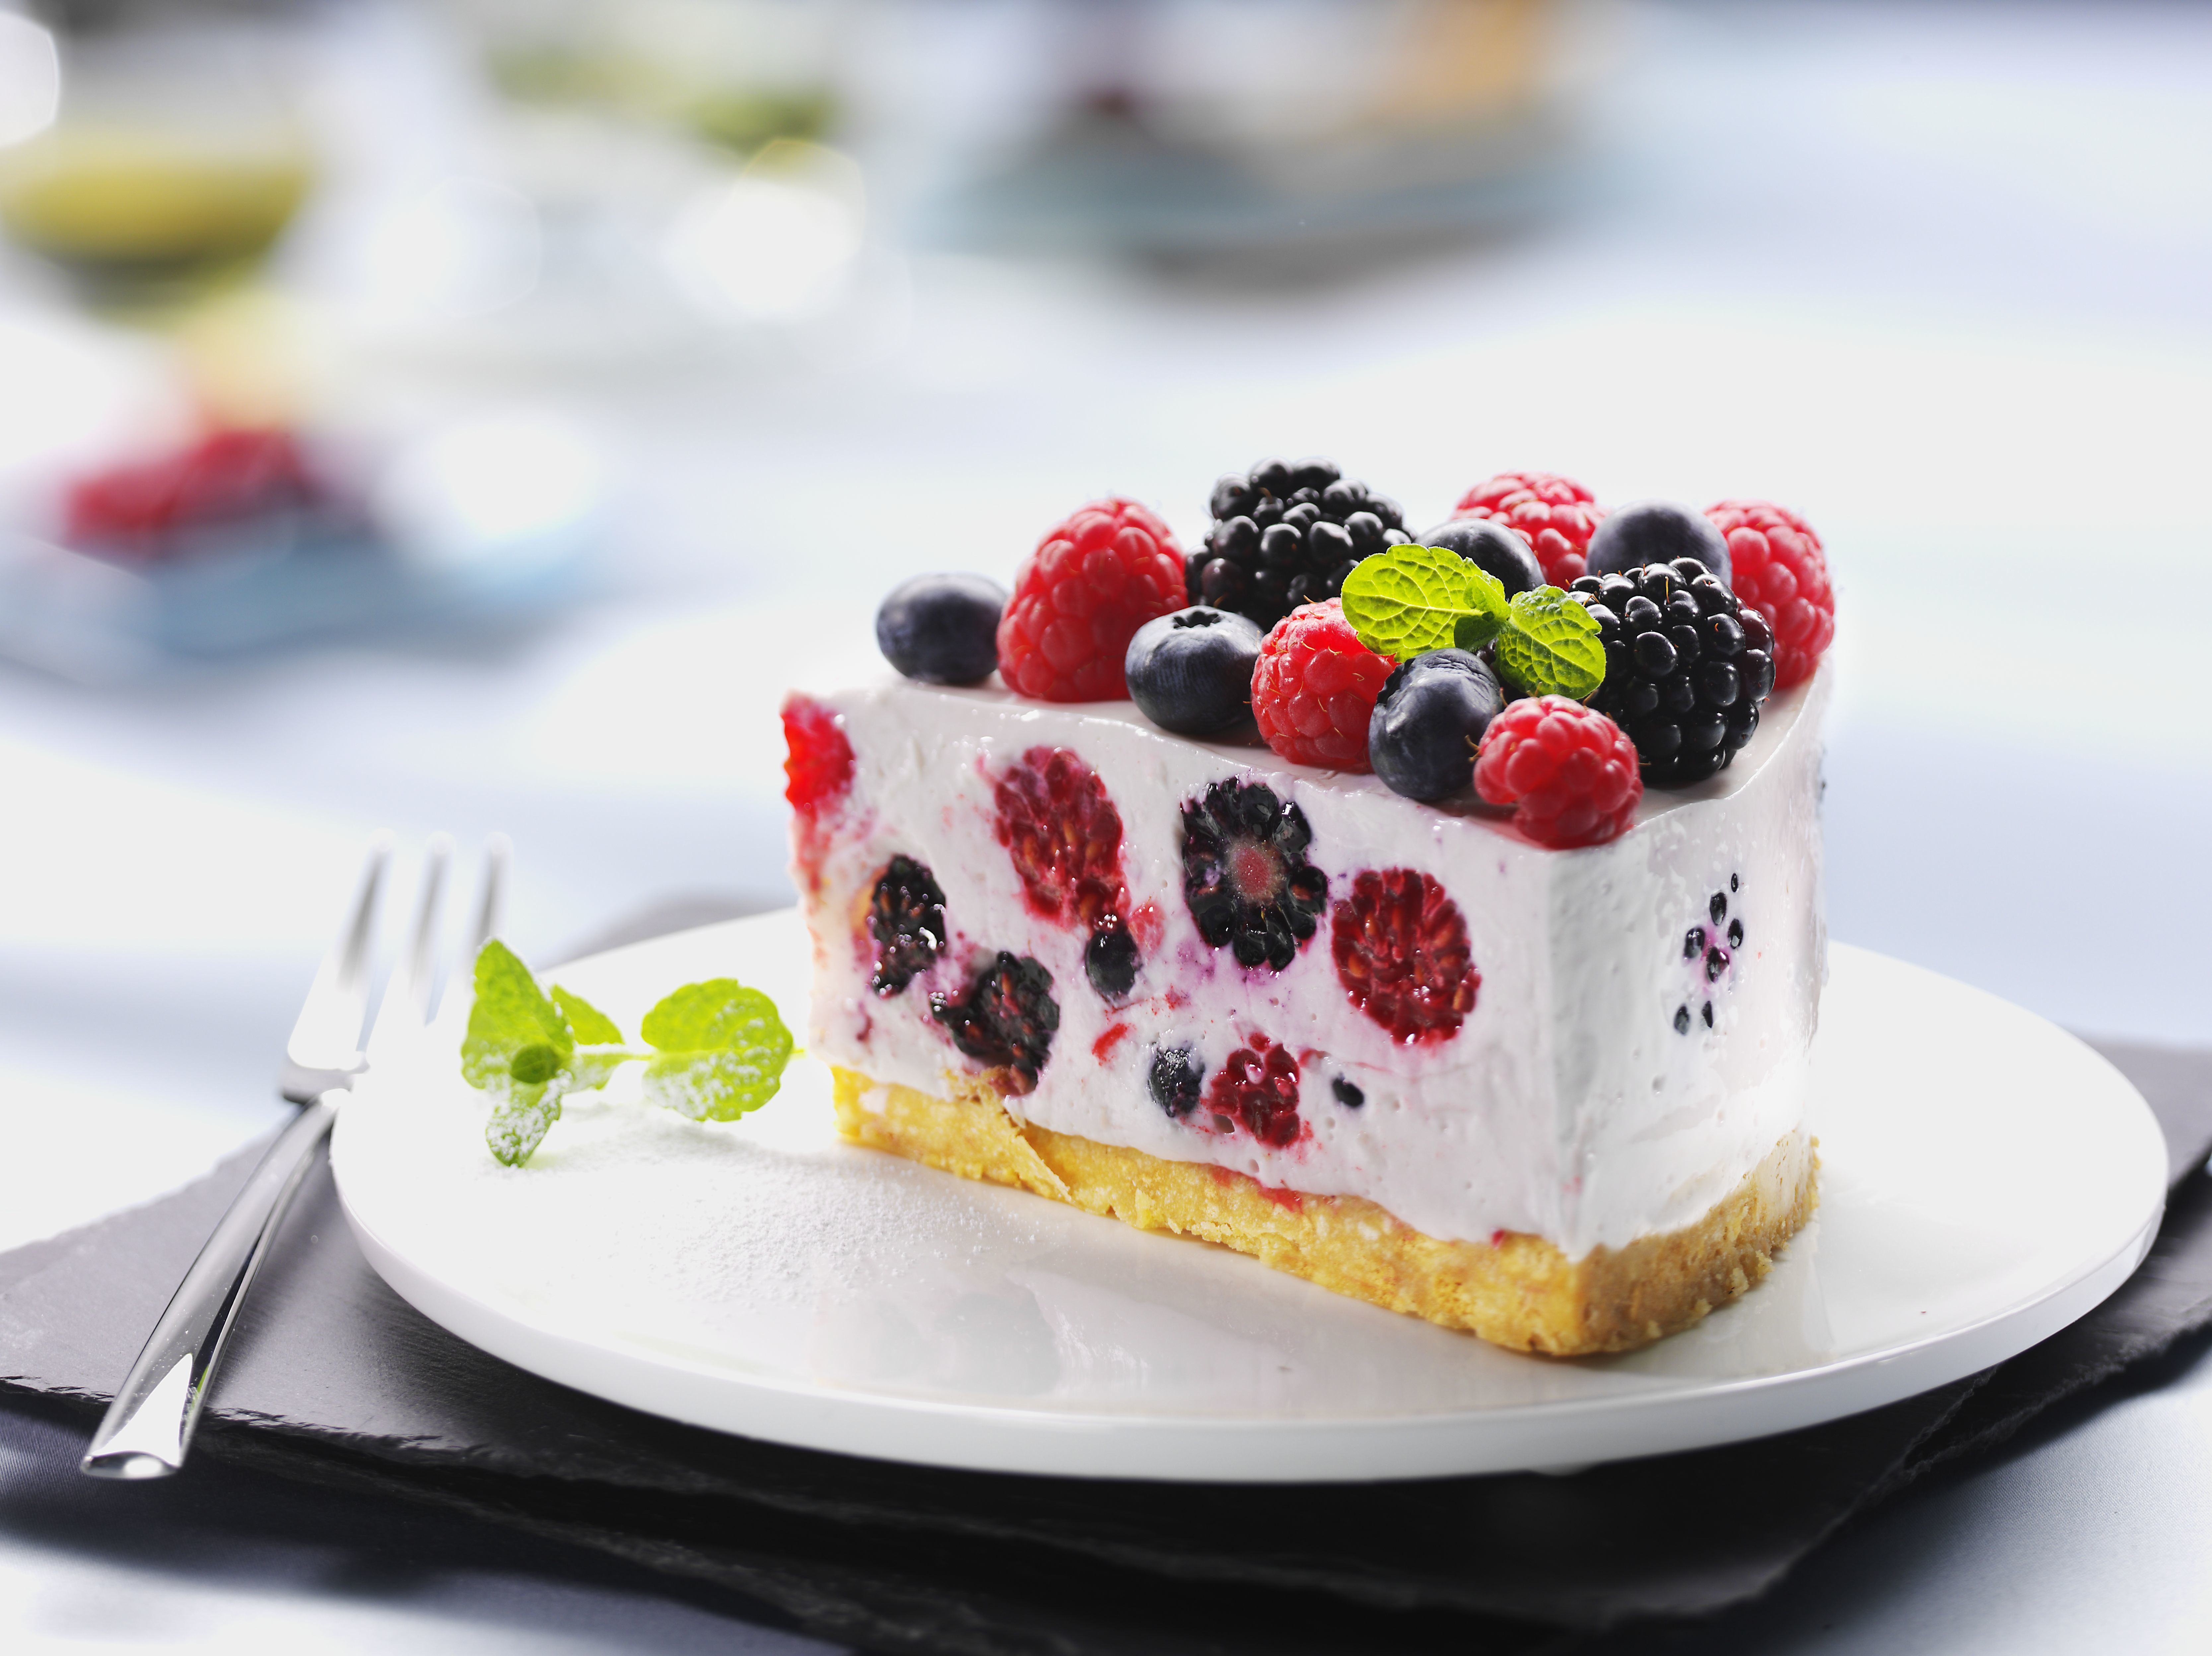 50471 download wallpaper Fruits, Food, Raspberry, Desert, Bilberries, Cake, Sweet, Black Currant, Blackcurrant, Cream screensavers and pictures for free